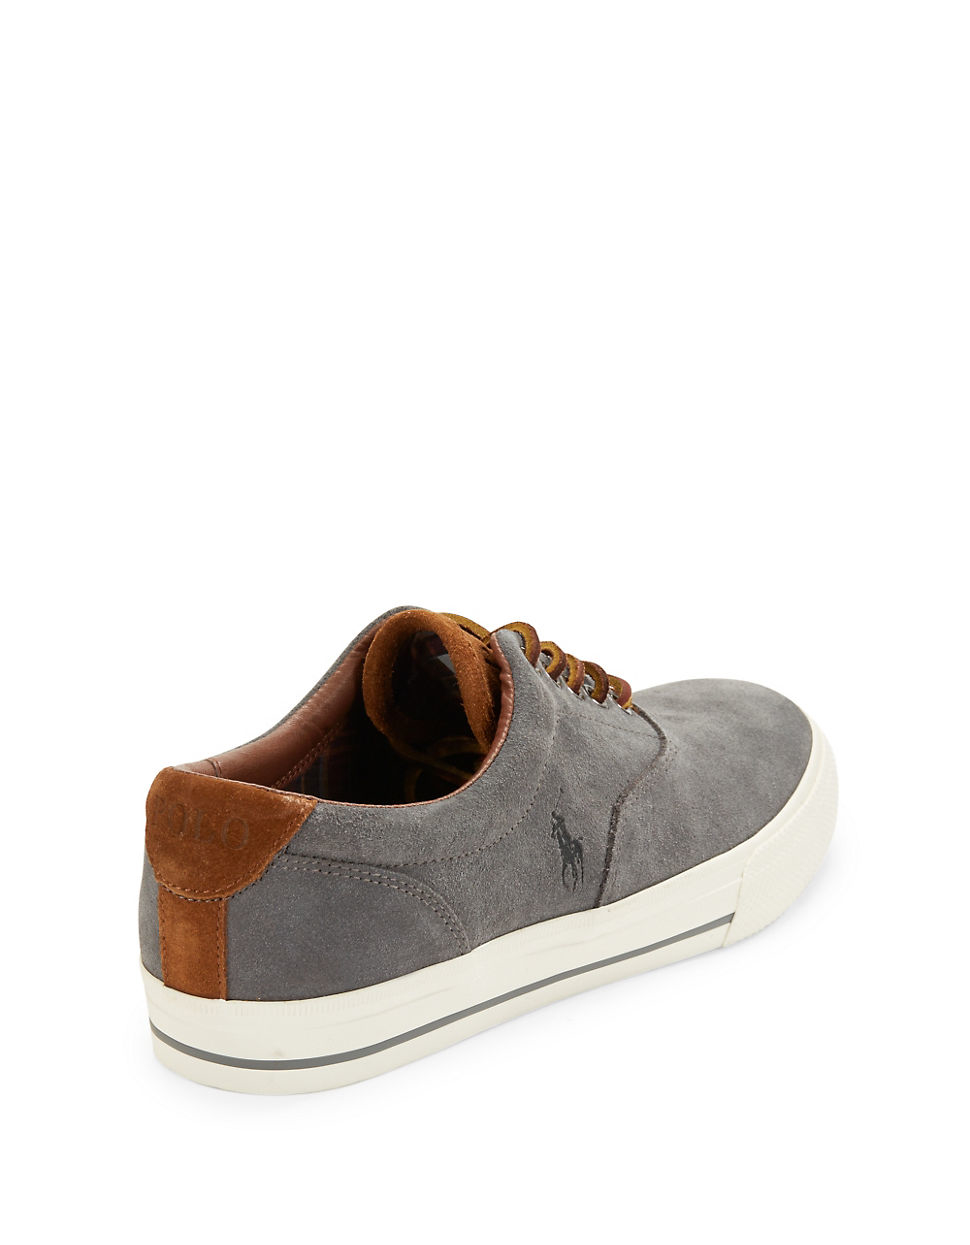 polo ralph vaughn suede lace up sneakers in gray